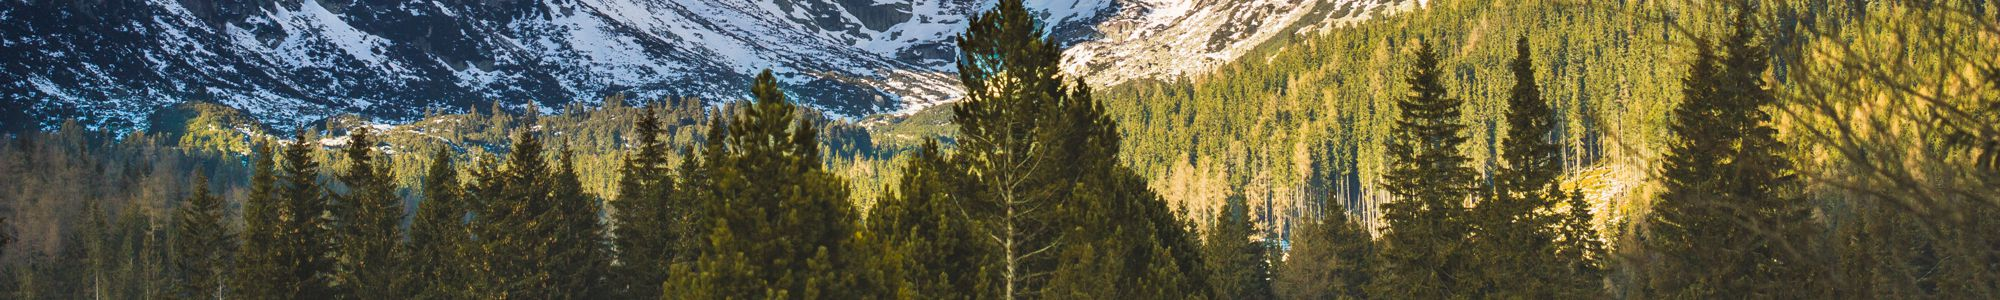 Trees in front of Mountain